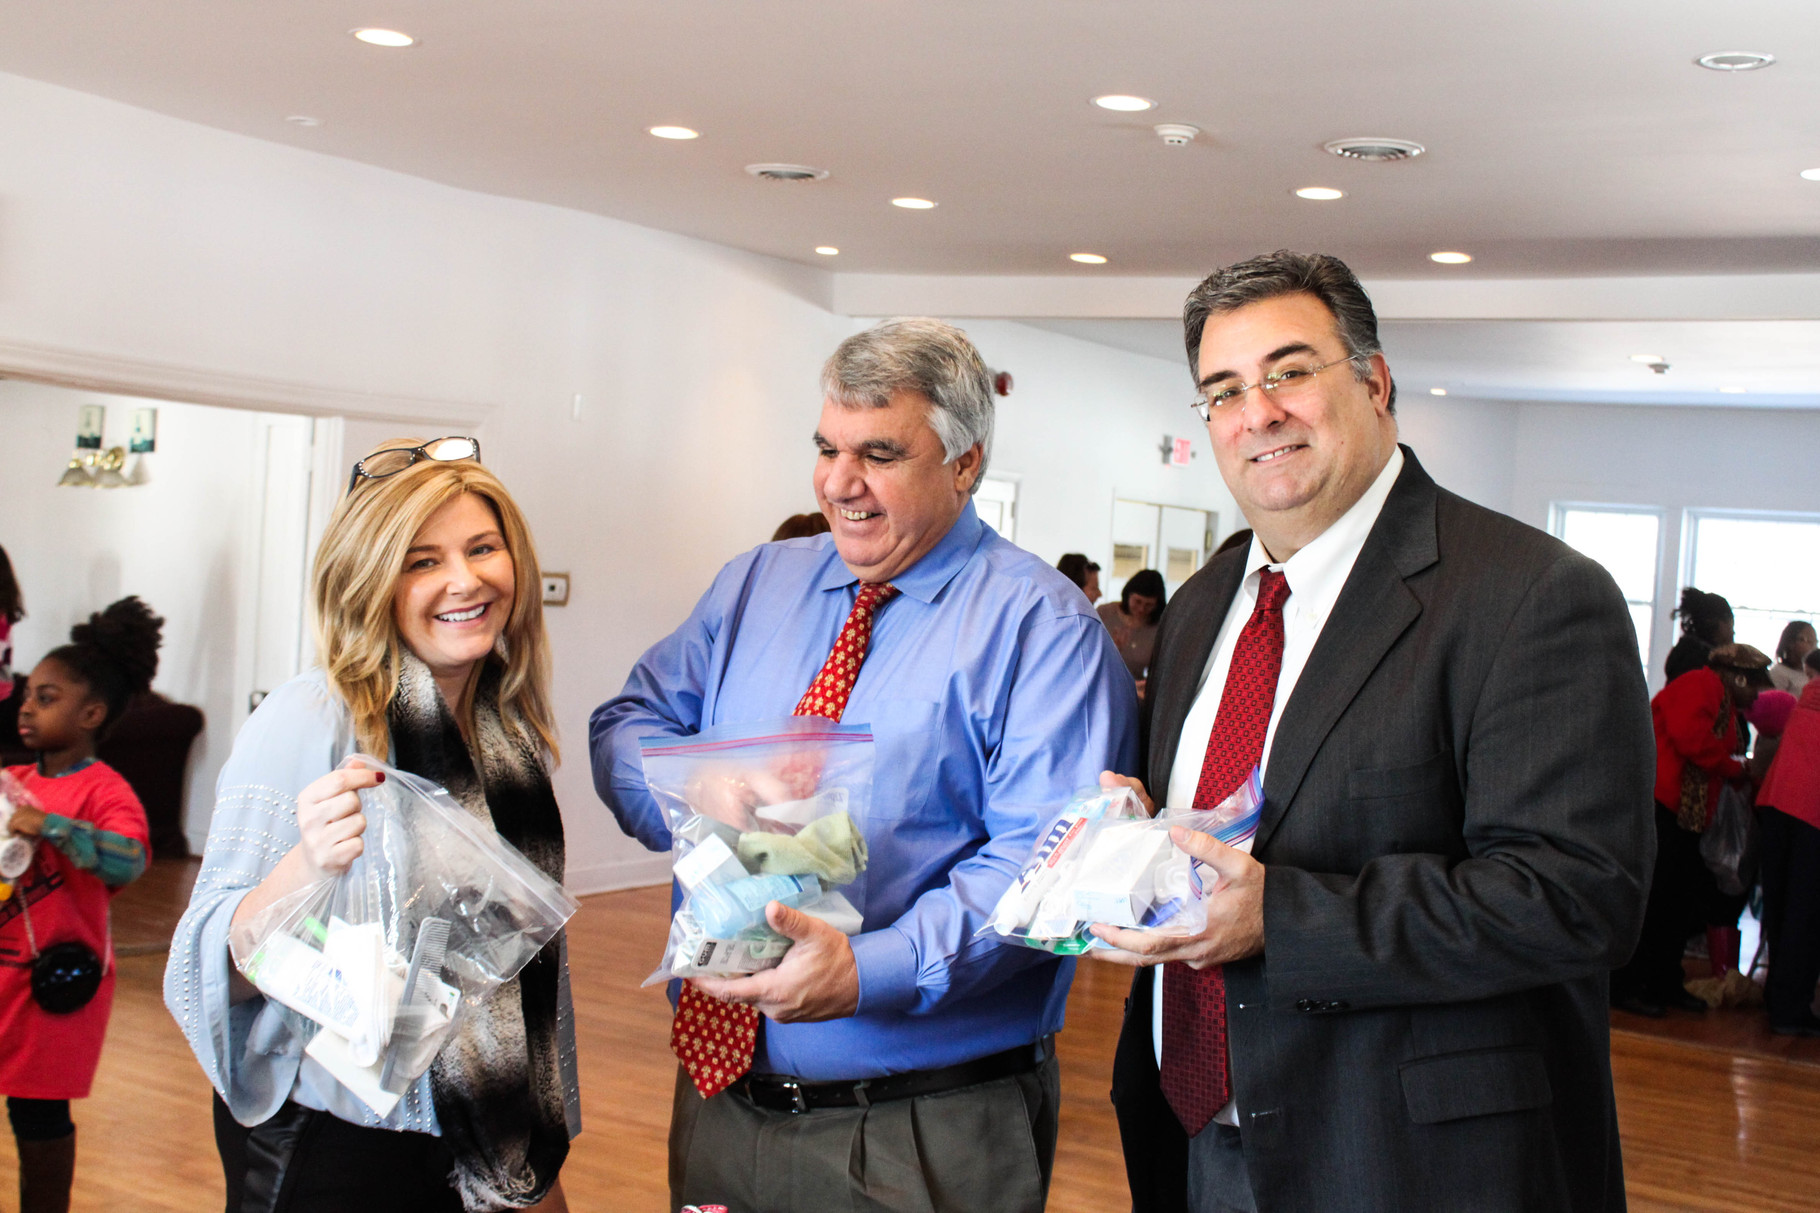 Deputy Mayor Rose Checchio, Mayor Kevin Glover, and Township Manager Al Mirabella display their finalized health kits at Scotch Hills Country Club